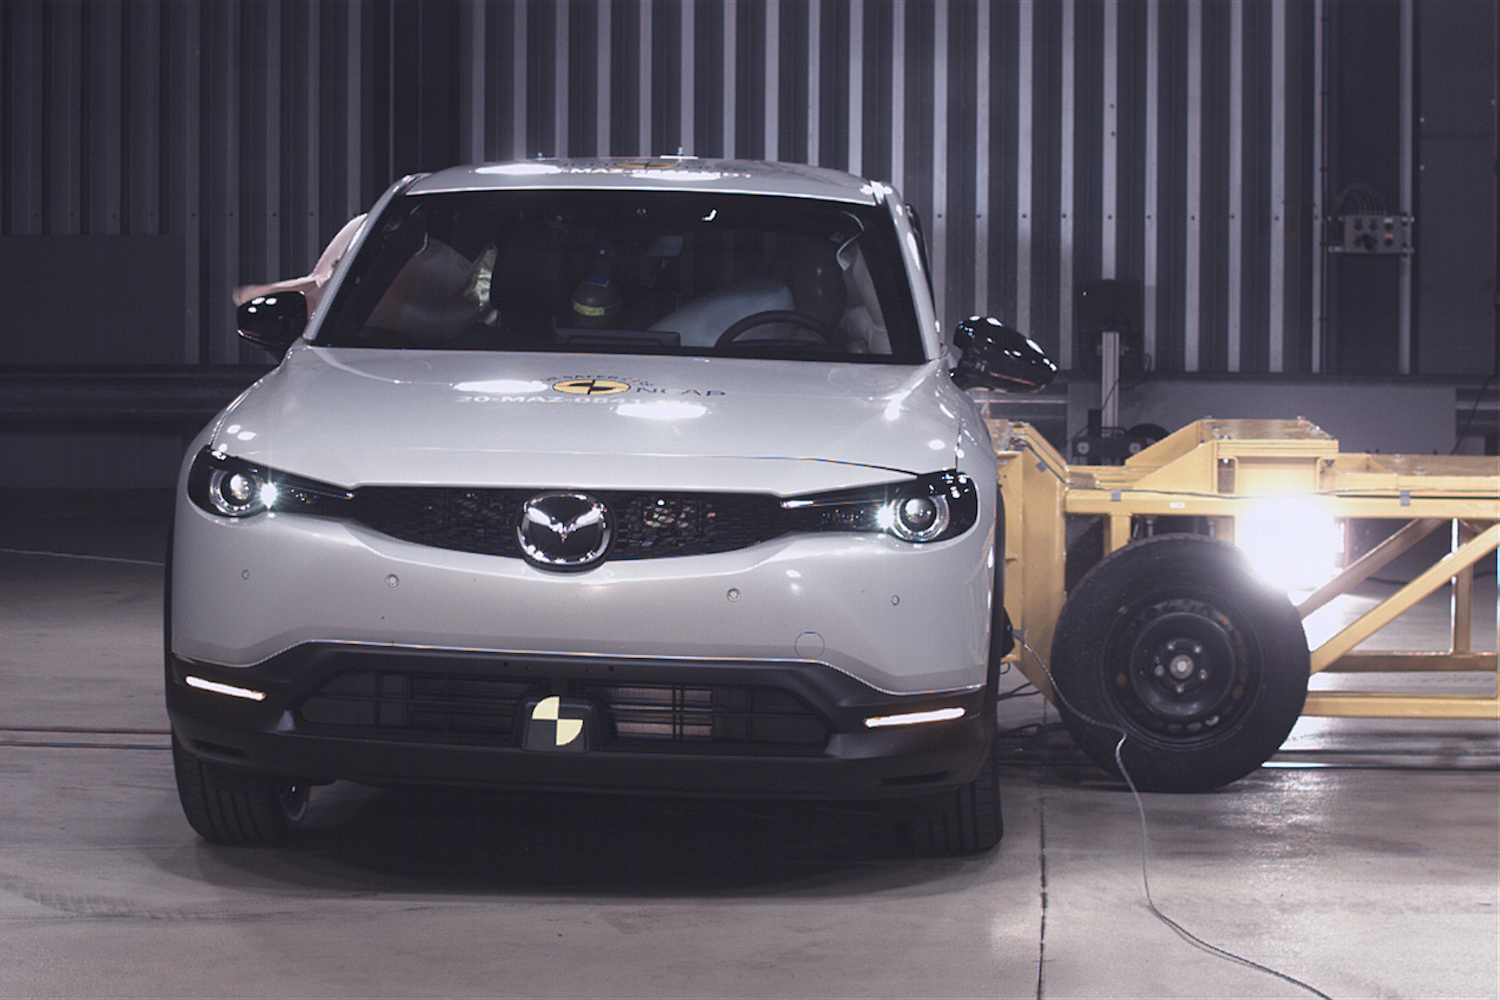 Car News | Mazda MX-30 and Jazz get top Euro NCAP crash results | CompleteCar.ie